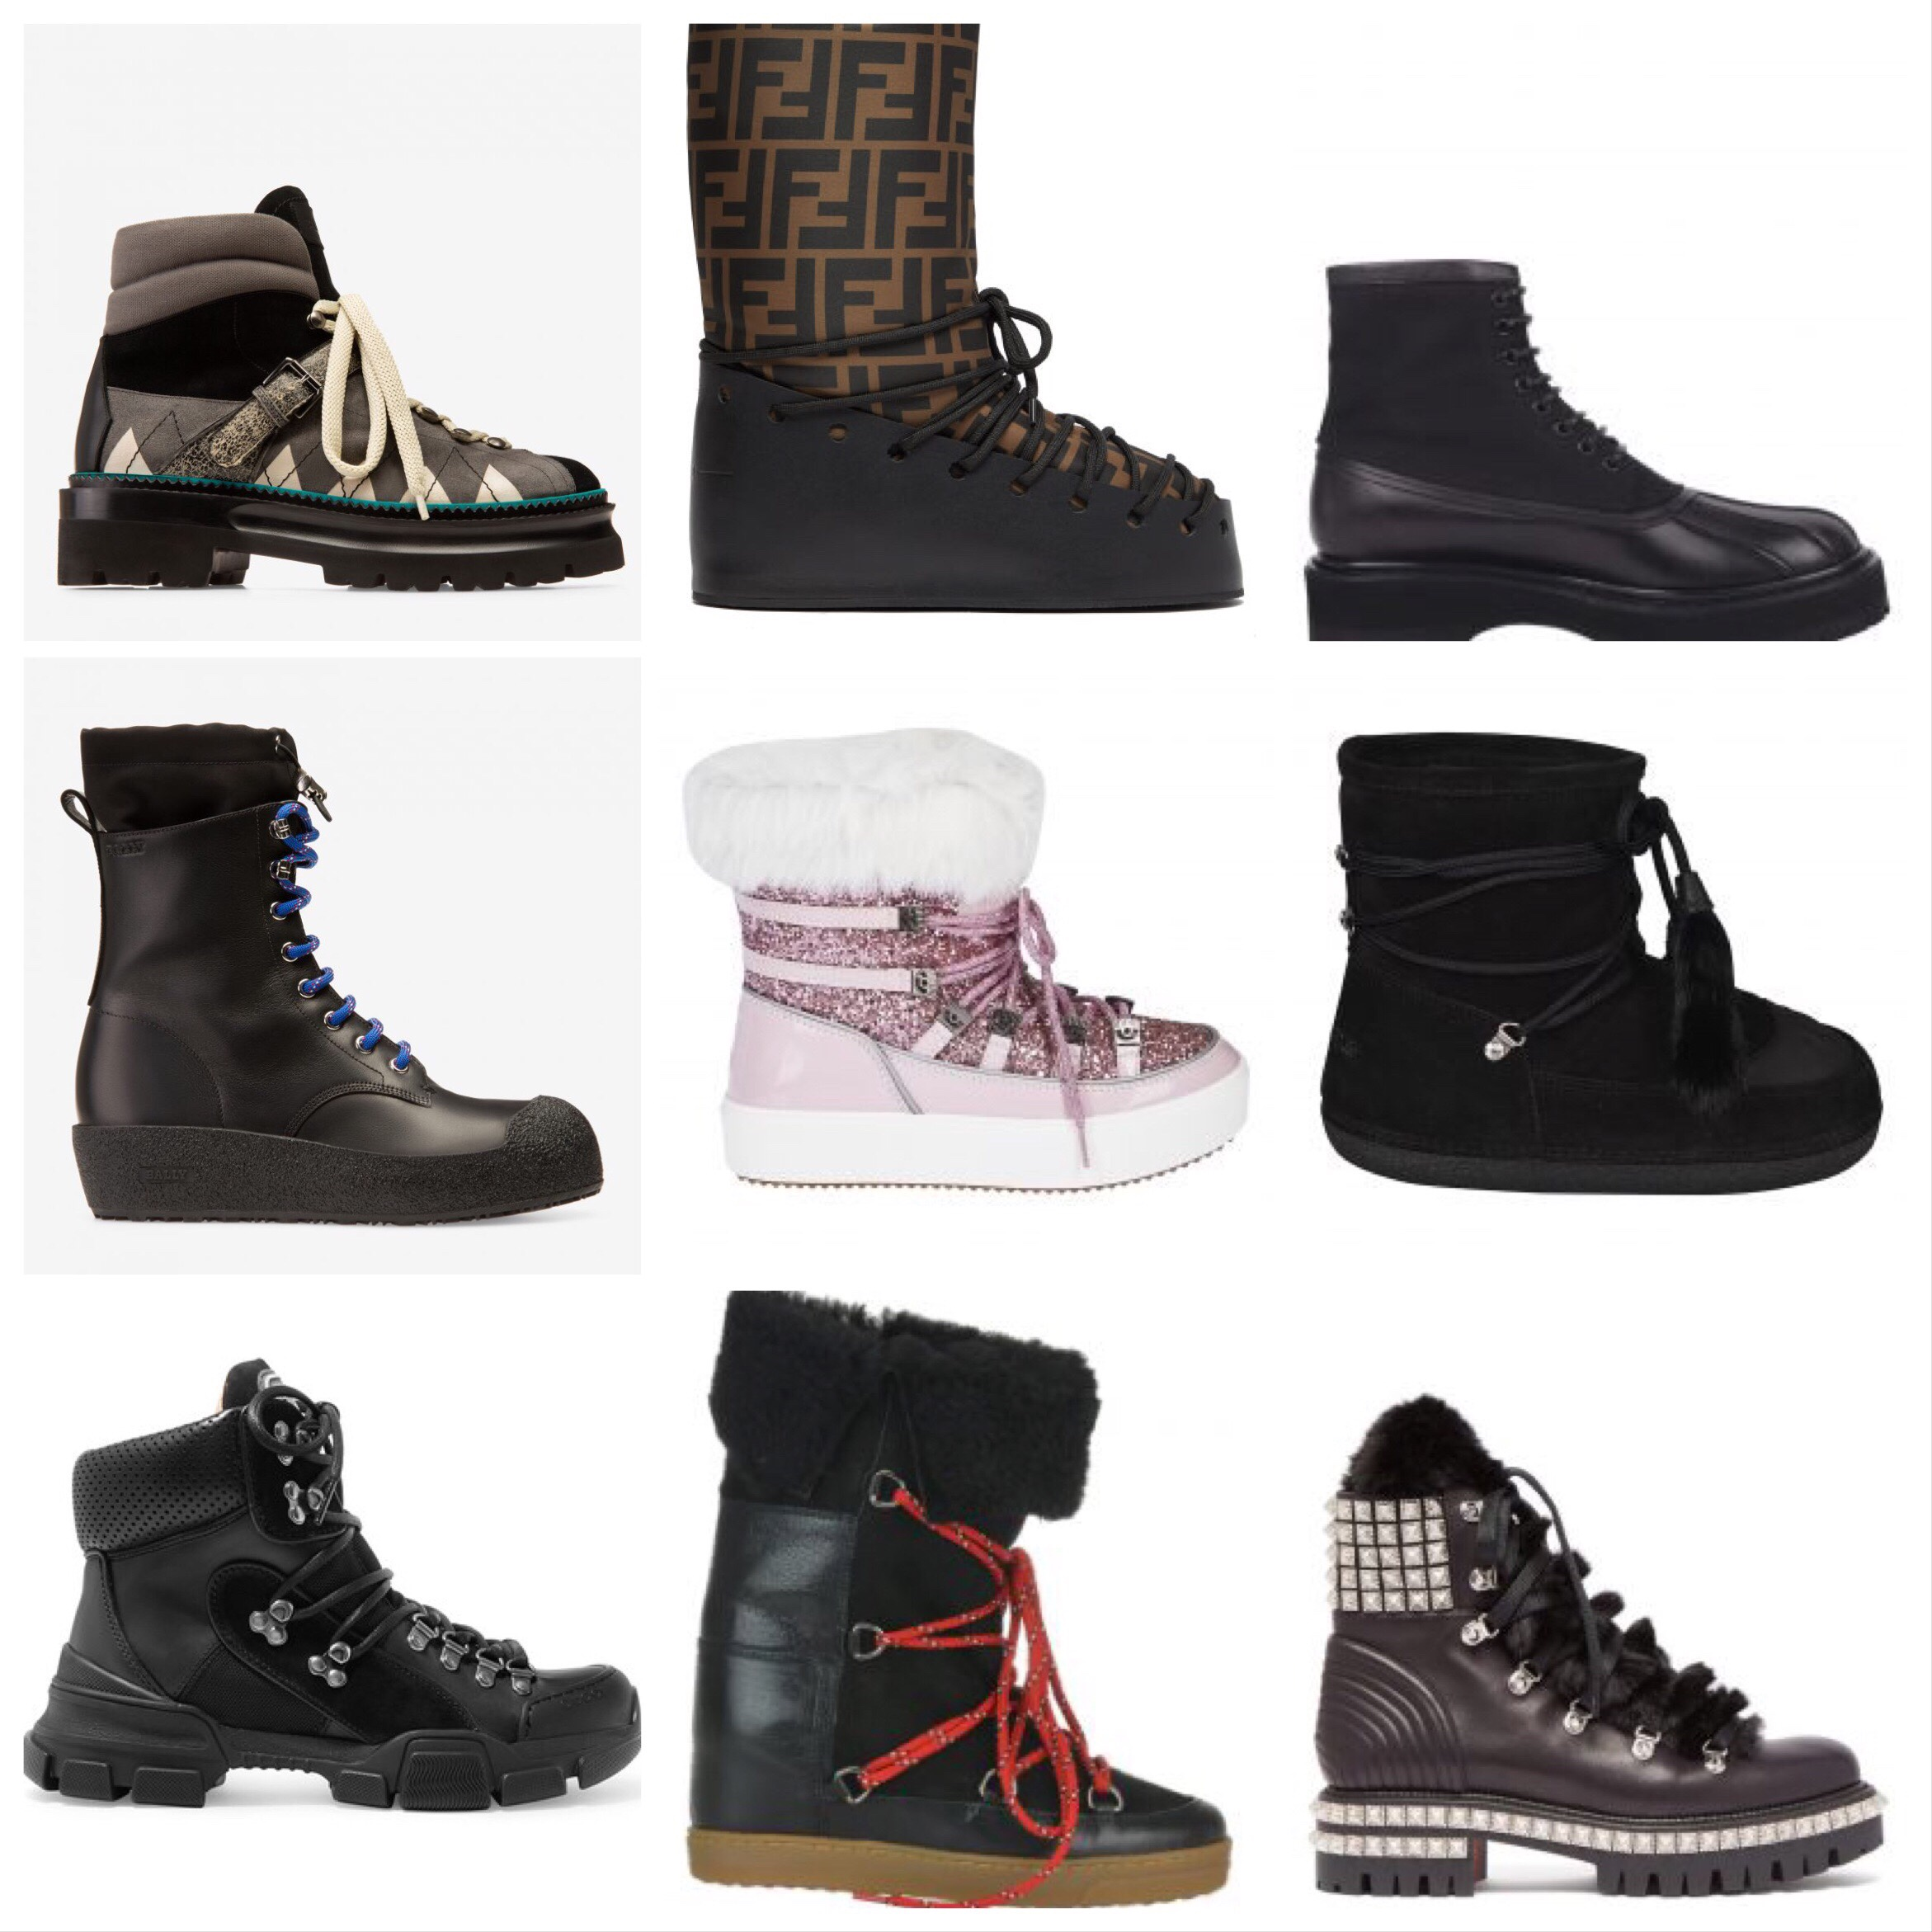 Luxury Snow Boot Guide